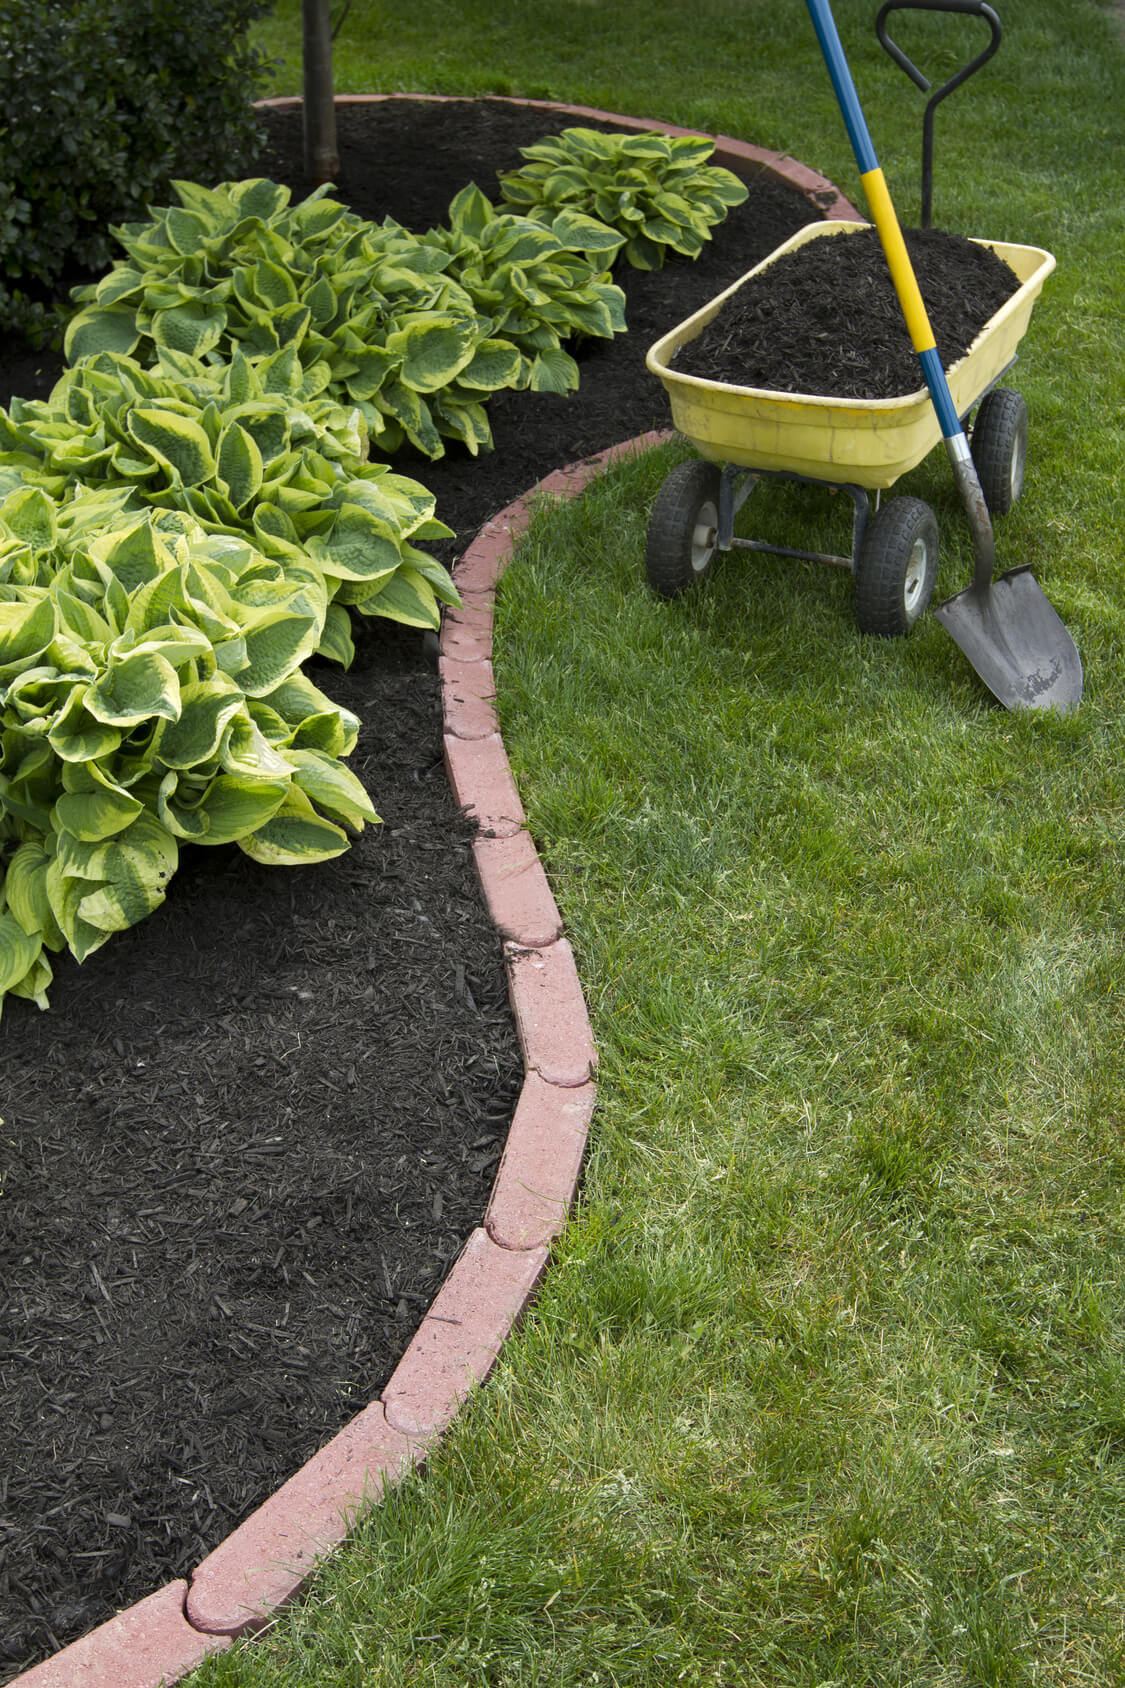 25 Best Lawn Edging Ideas And Designs For 2021